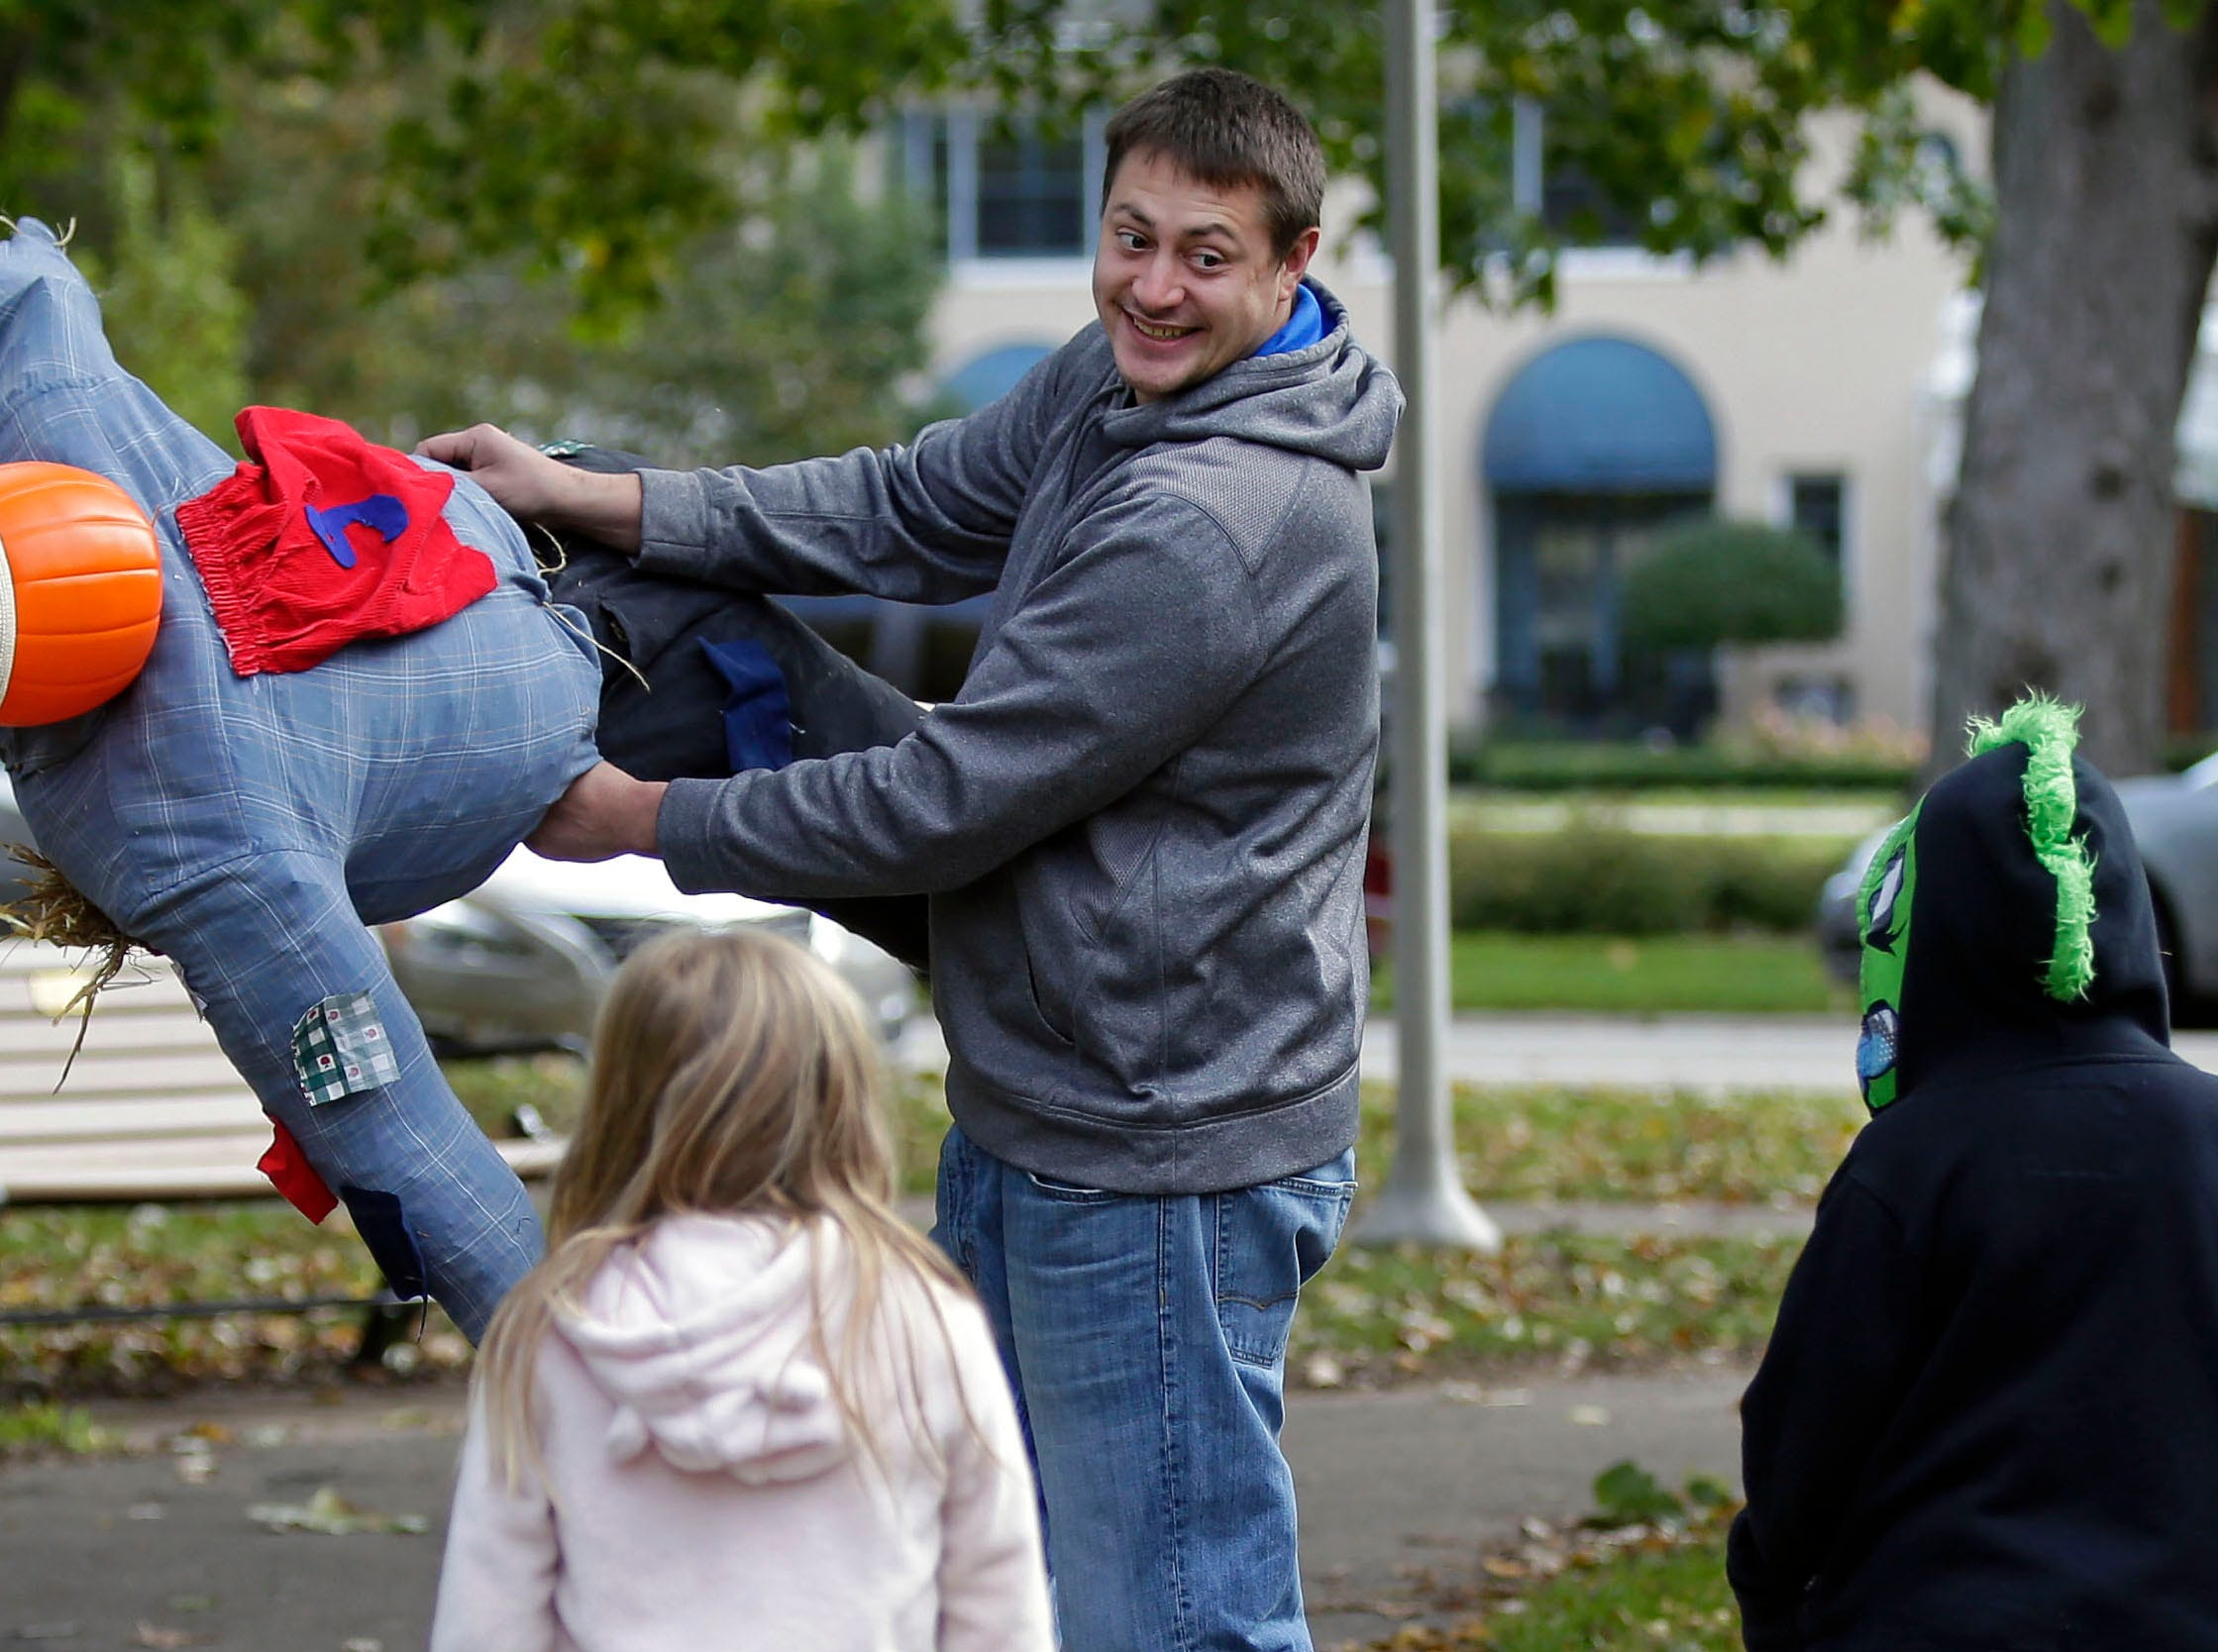 Roland Kessen flies a scarecrow around as Hailey, left, and Isaac Kessen watch, at the annual Build-A-Scarecrow event. The Neenah Parks and Recreation Department provided the frame and straw Saturday, October 13, 2018, at Riverside Park in Neenah, Wis.